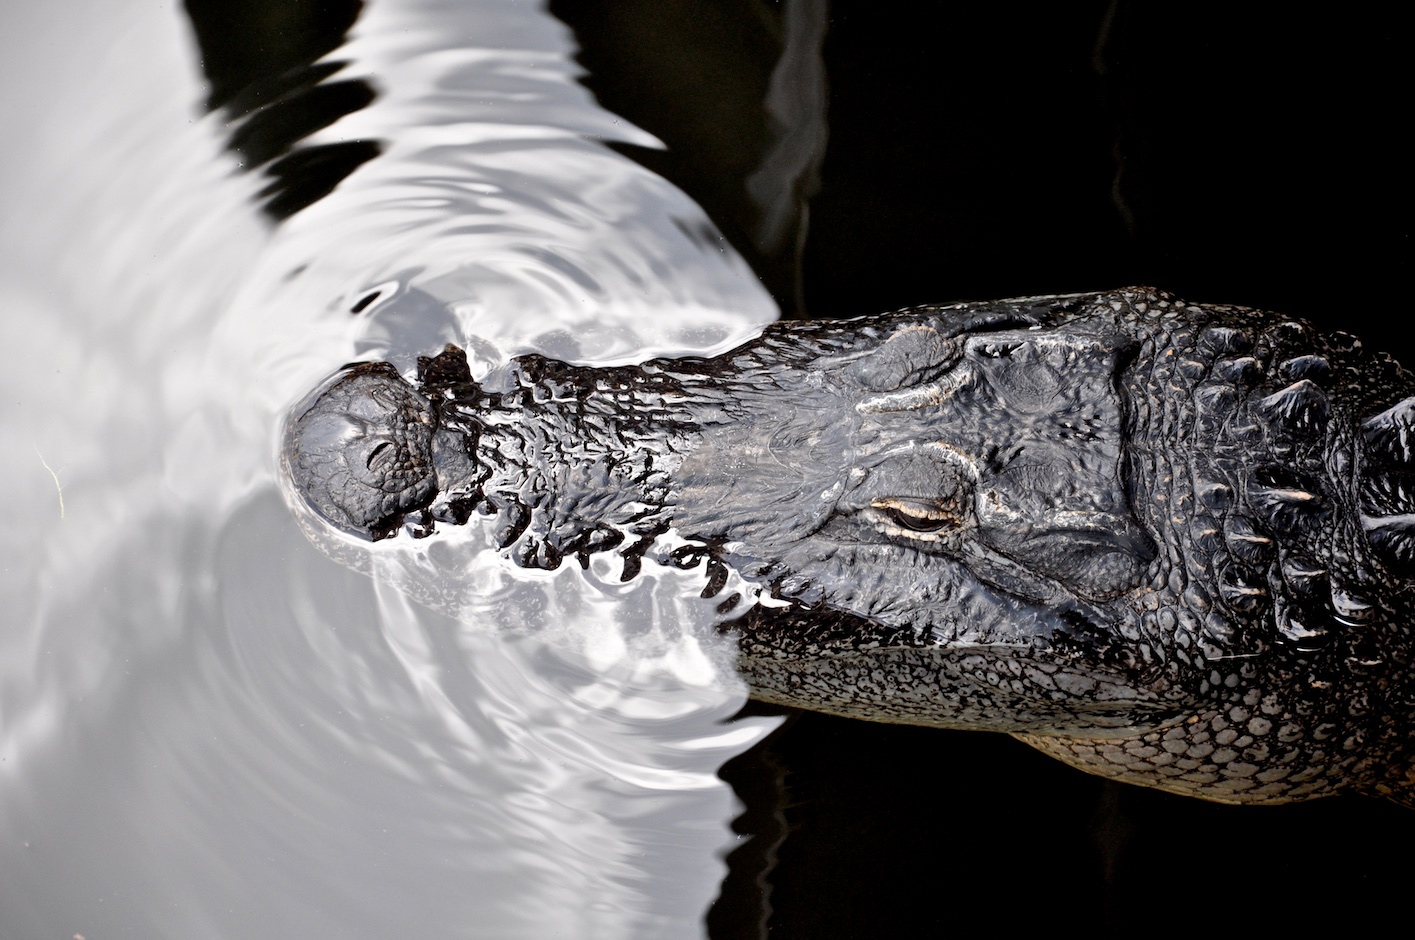 Everglades - Alligator